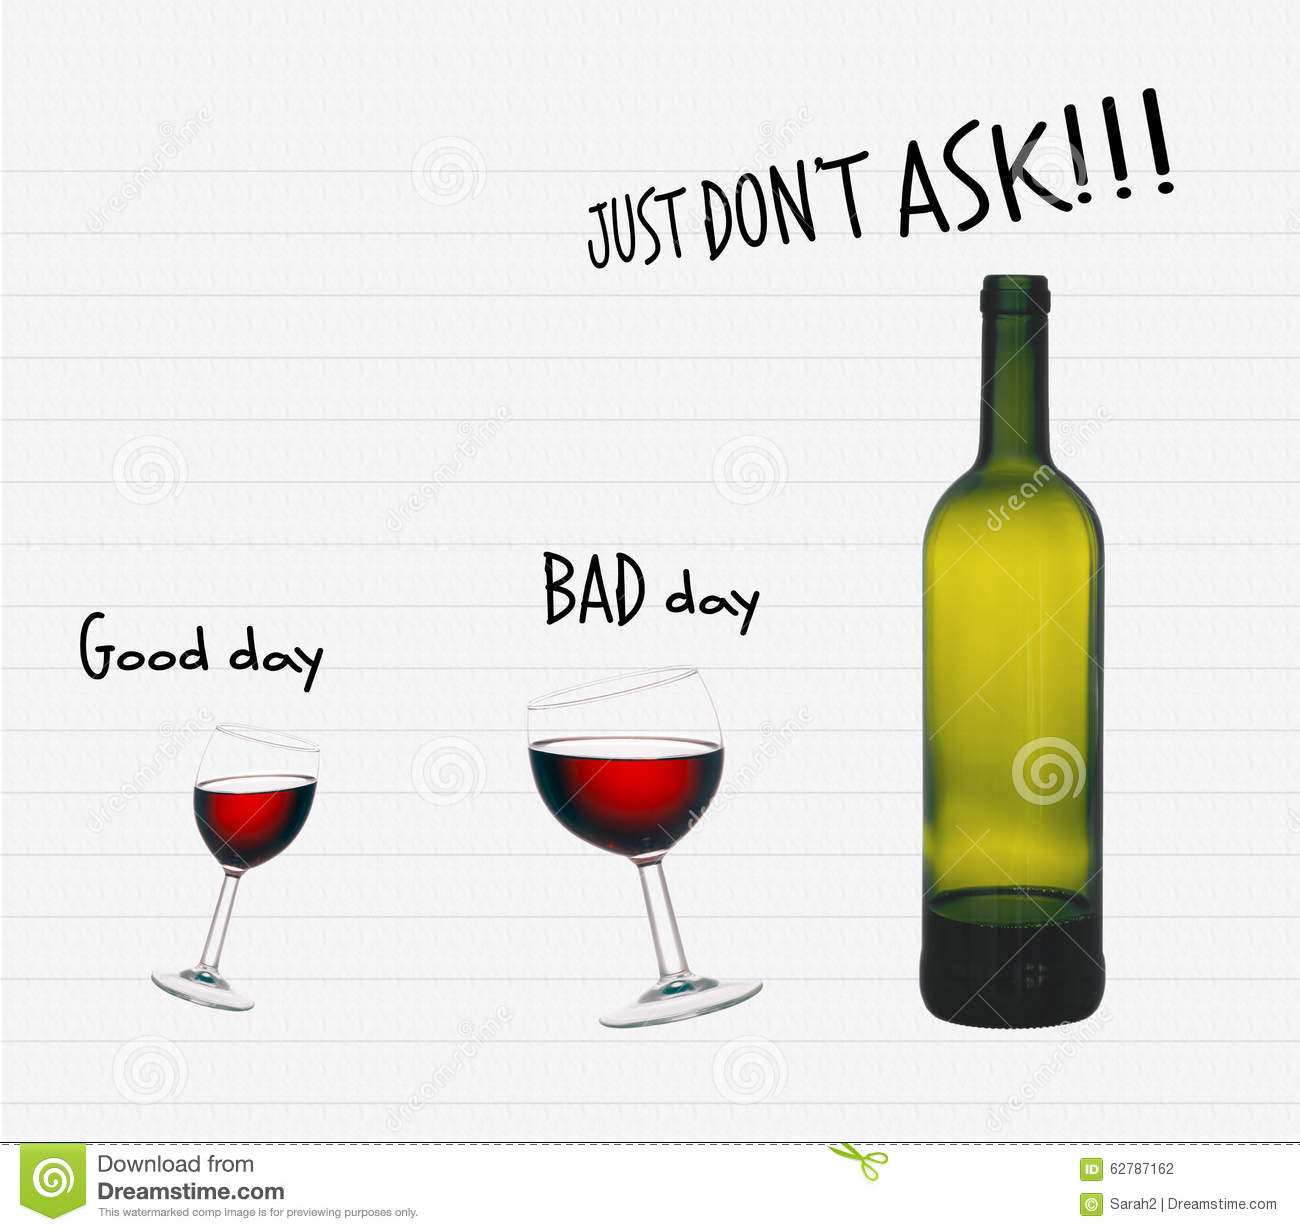 Office alcohol, red wine. Good day, bad day. Humour, fun.